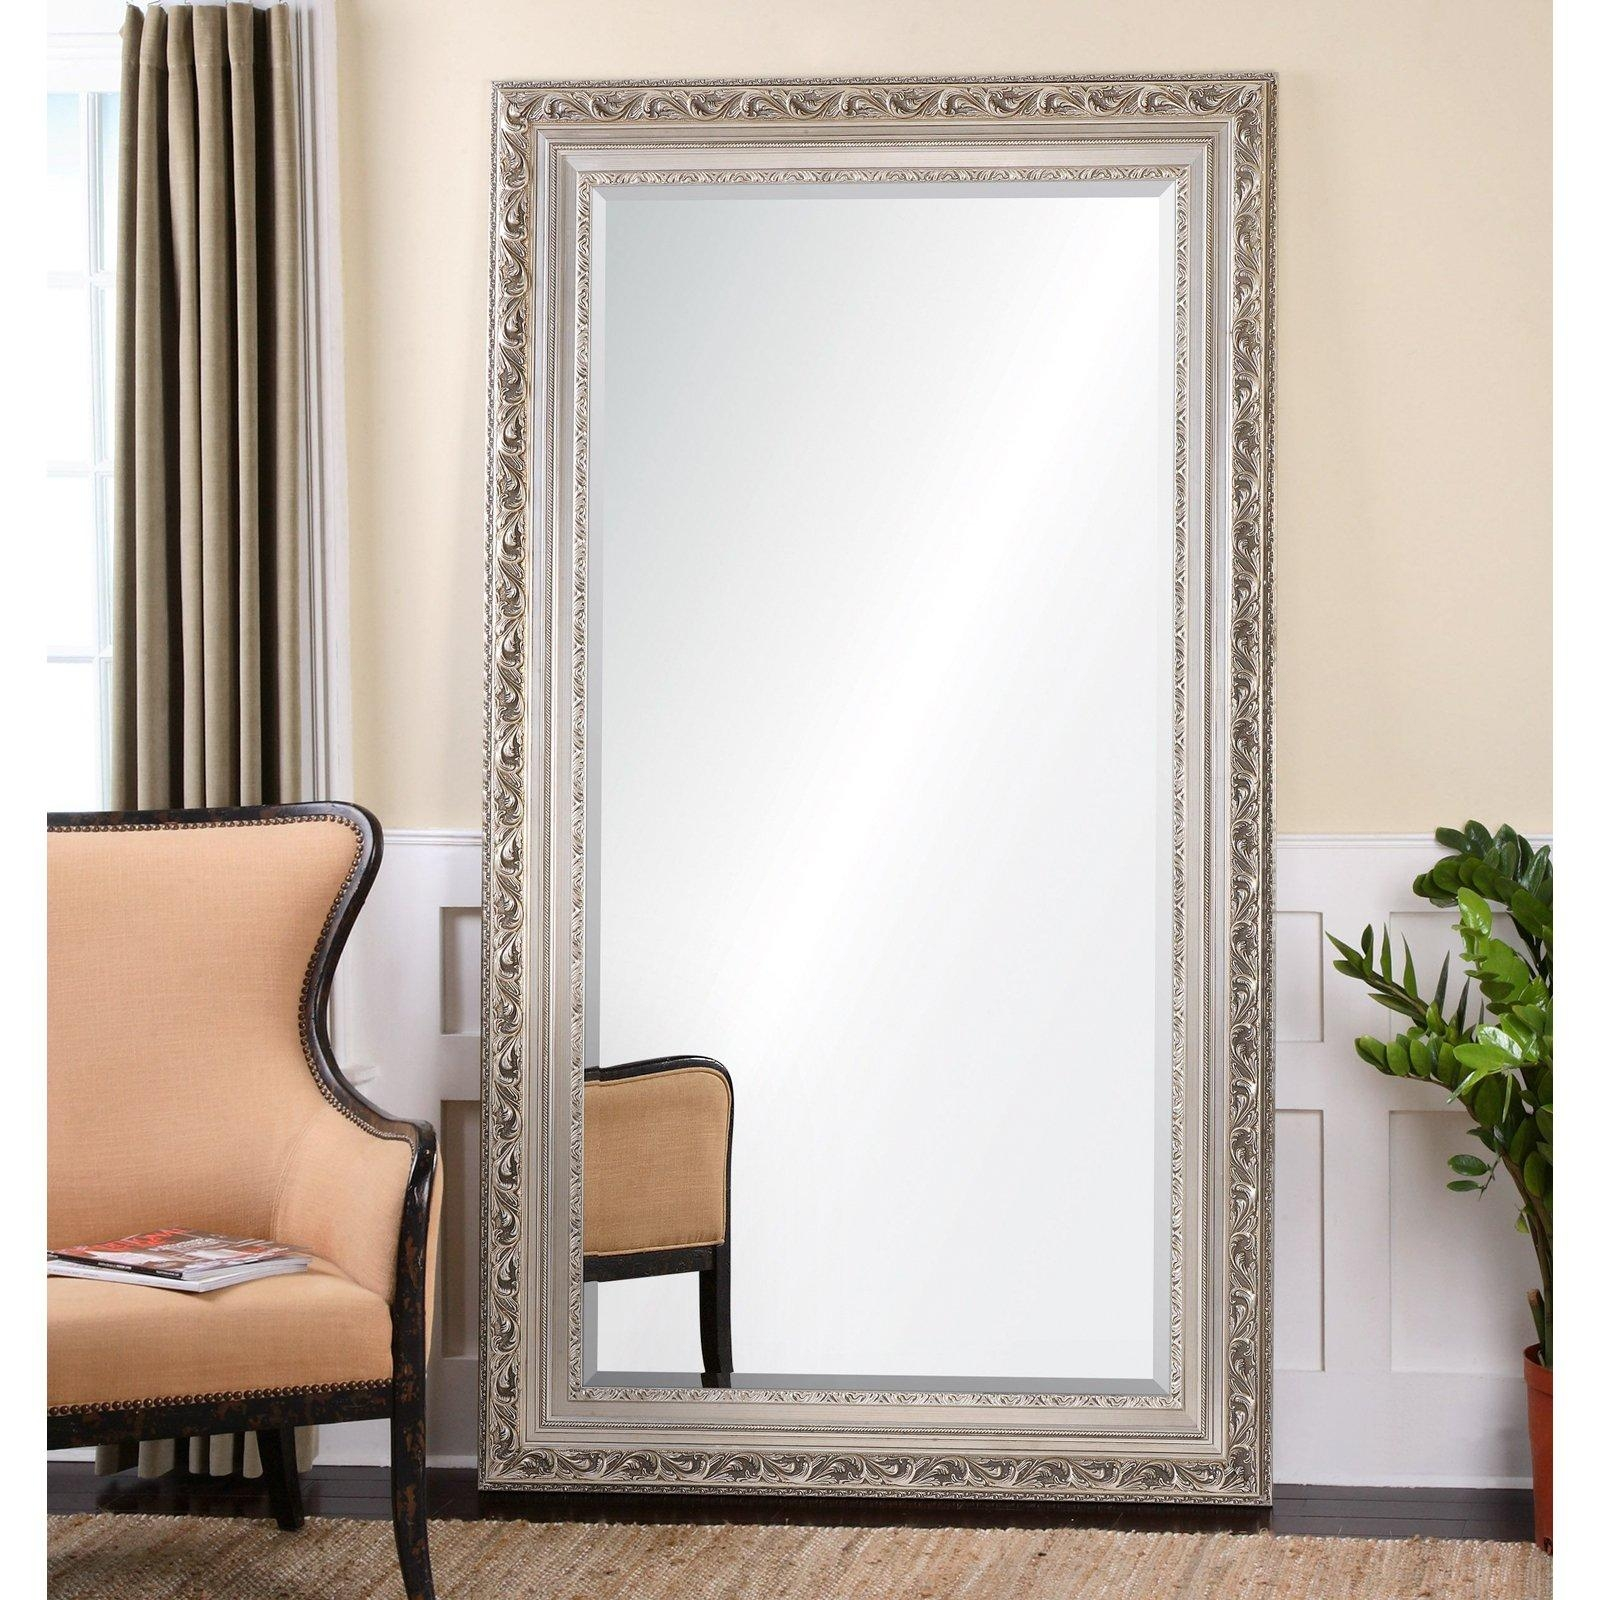 Cheap white wall mirror